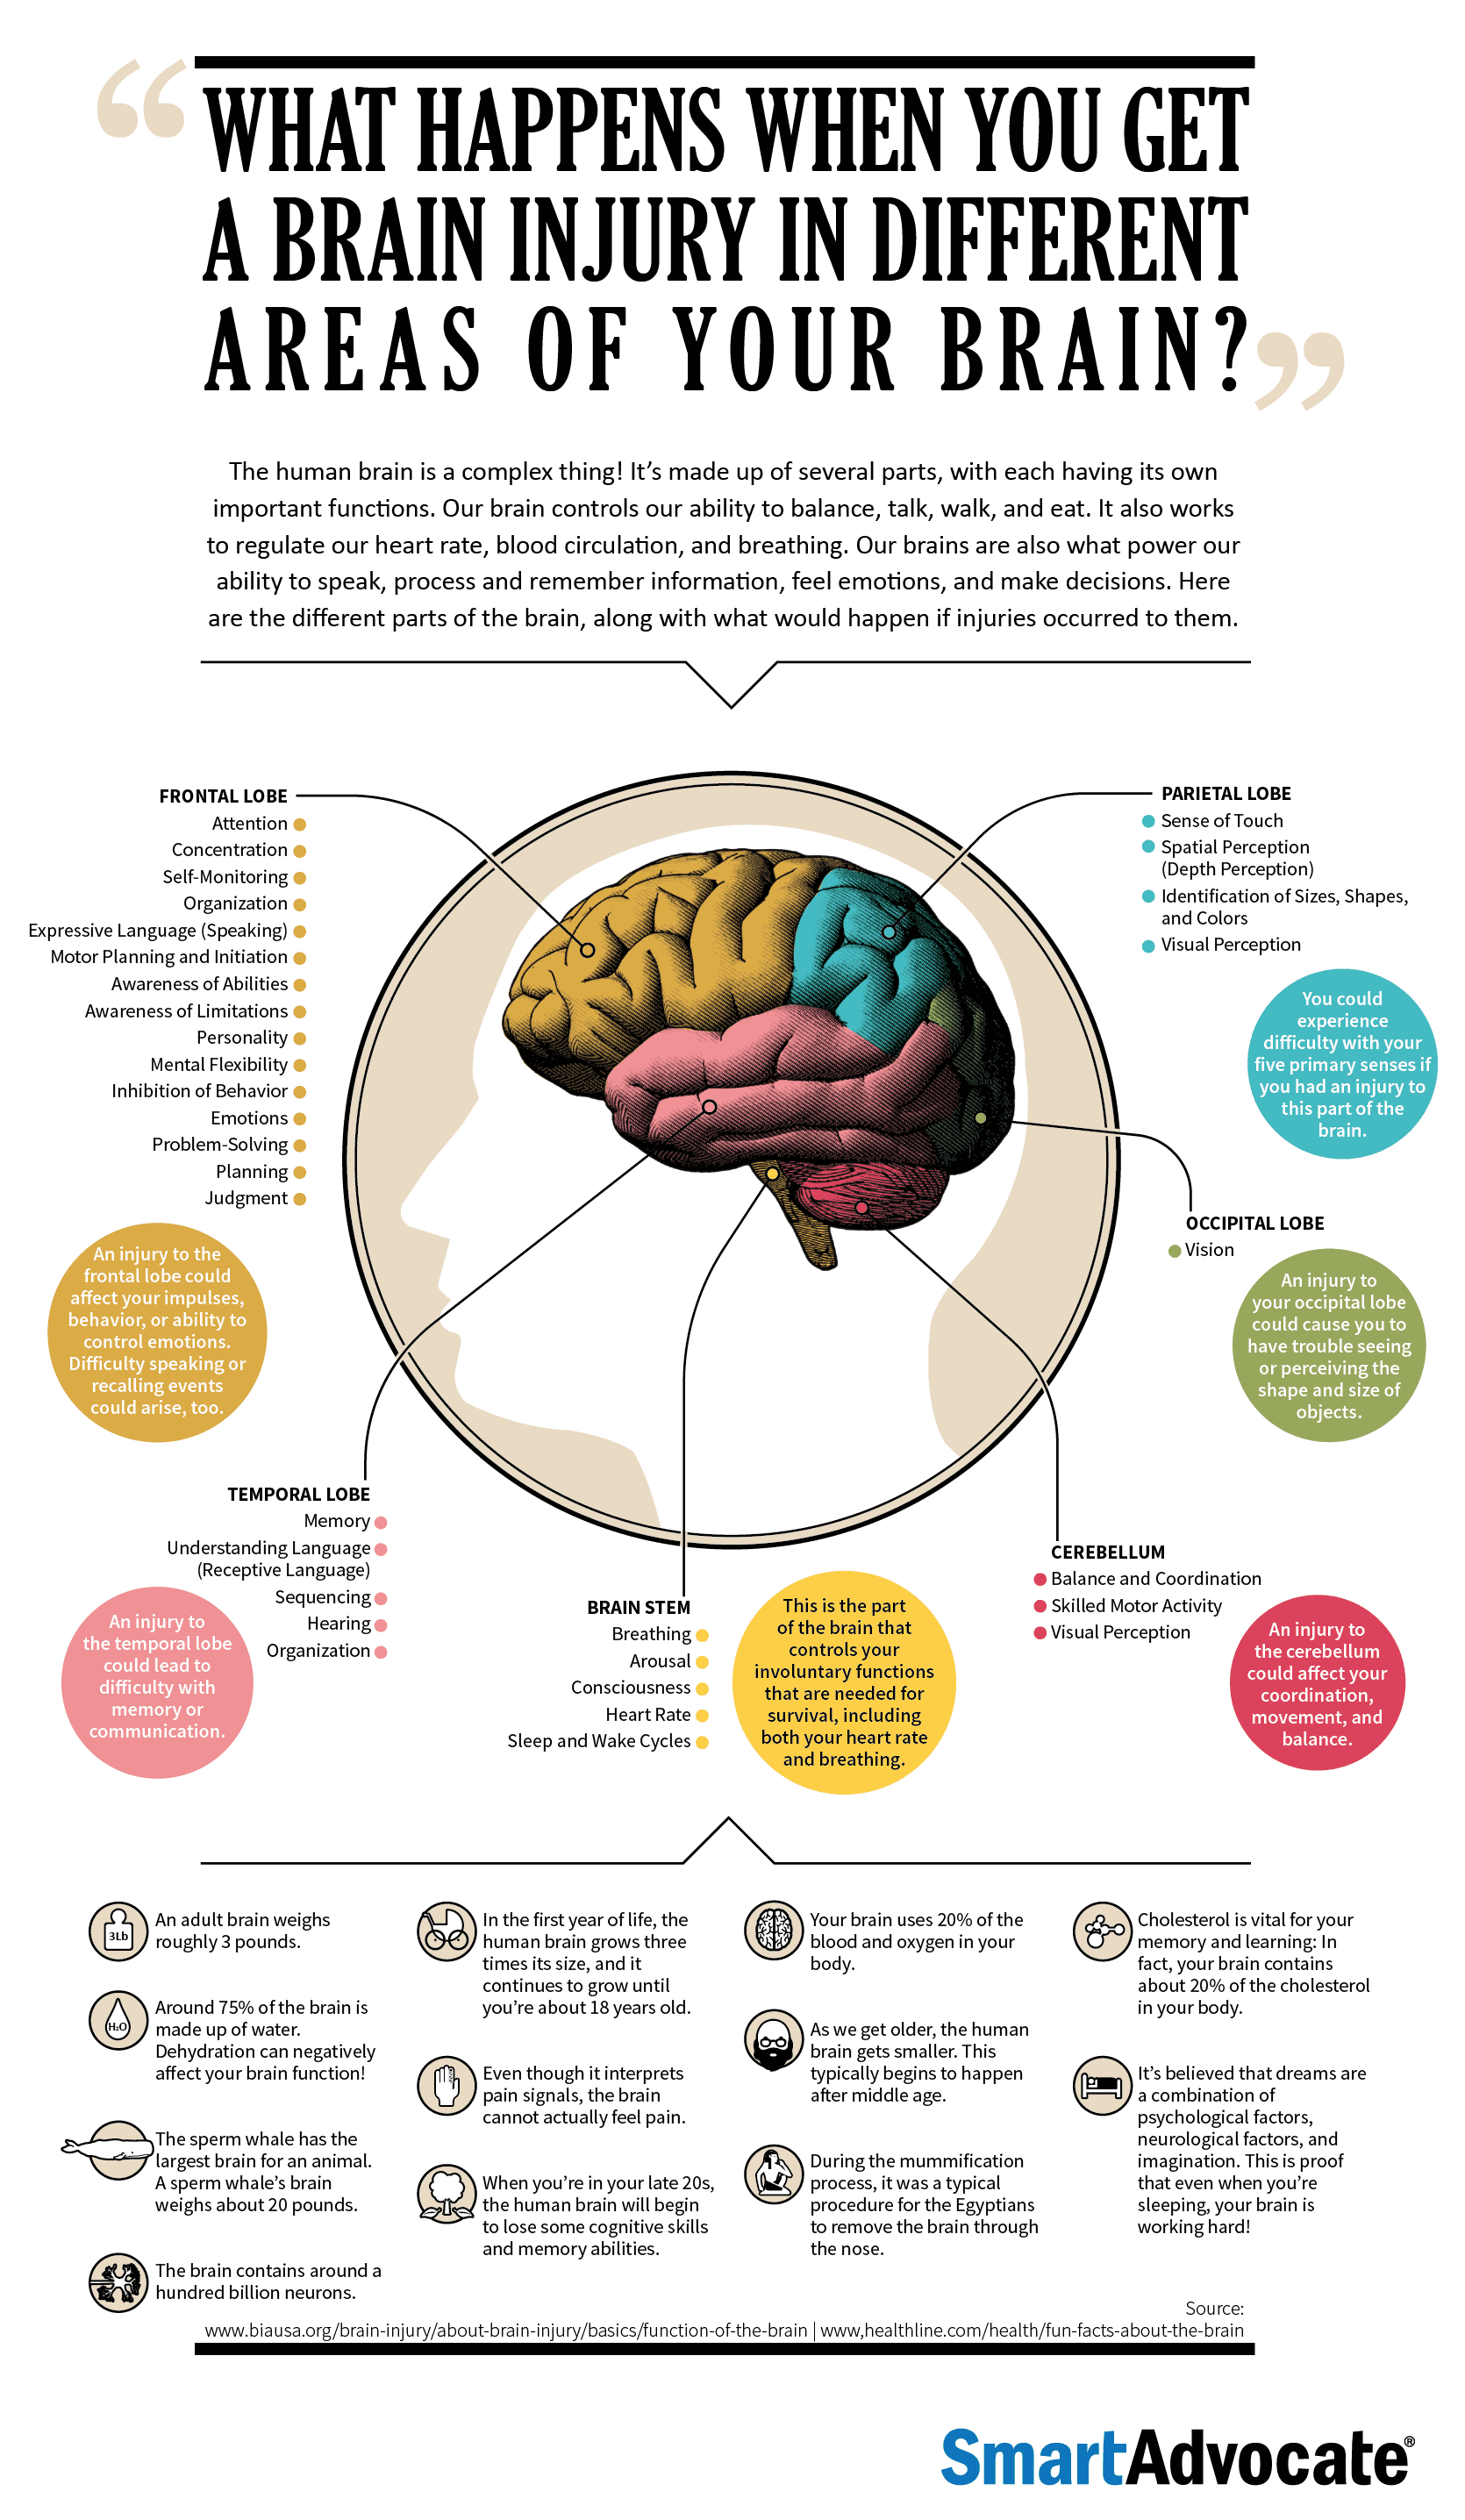 What Happens When Different Parts of Your Brain Gets Injured